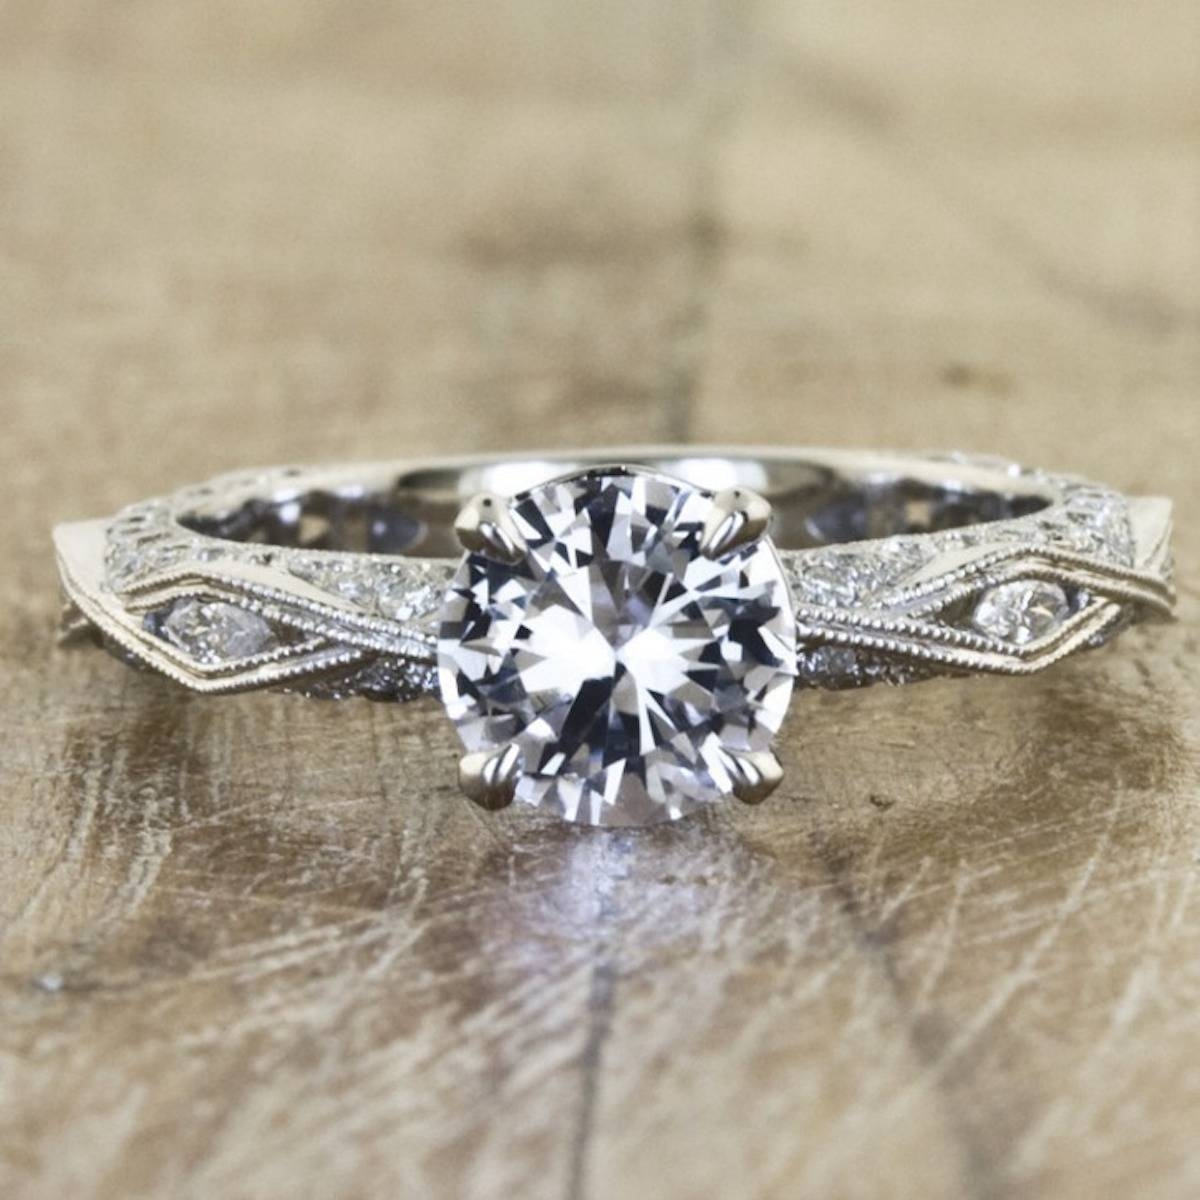 4 Great Reasons For Purchasing A Handmade Diamond Engagement Ring Intended For Hand Made Engagement Rings (Gallery 4 of 15)